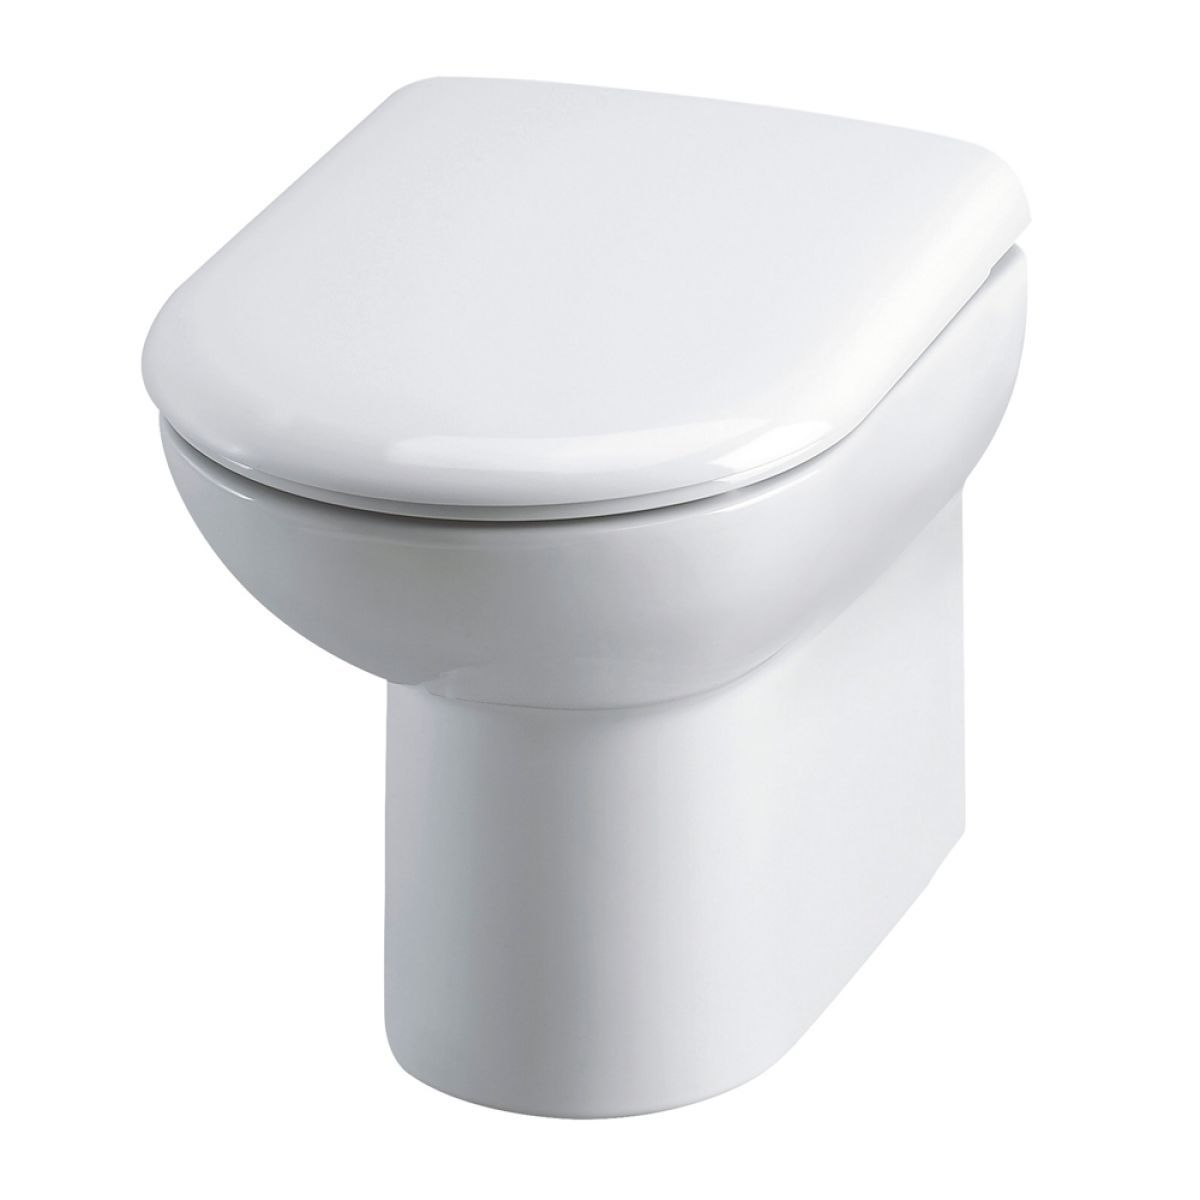 Nuie D Shaped Back To Wall Toilet